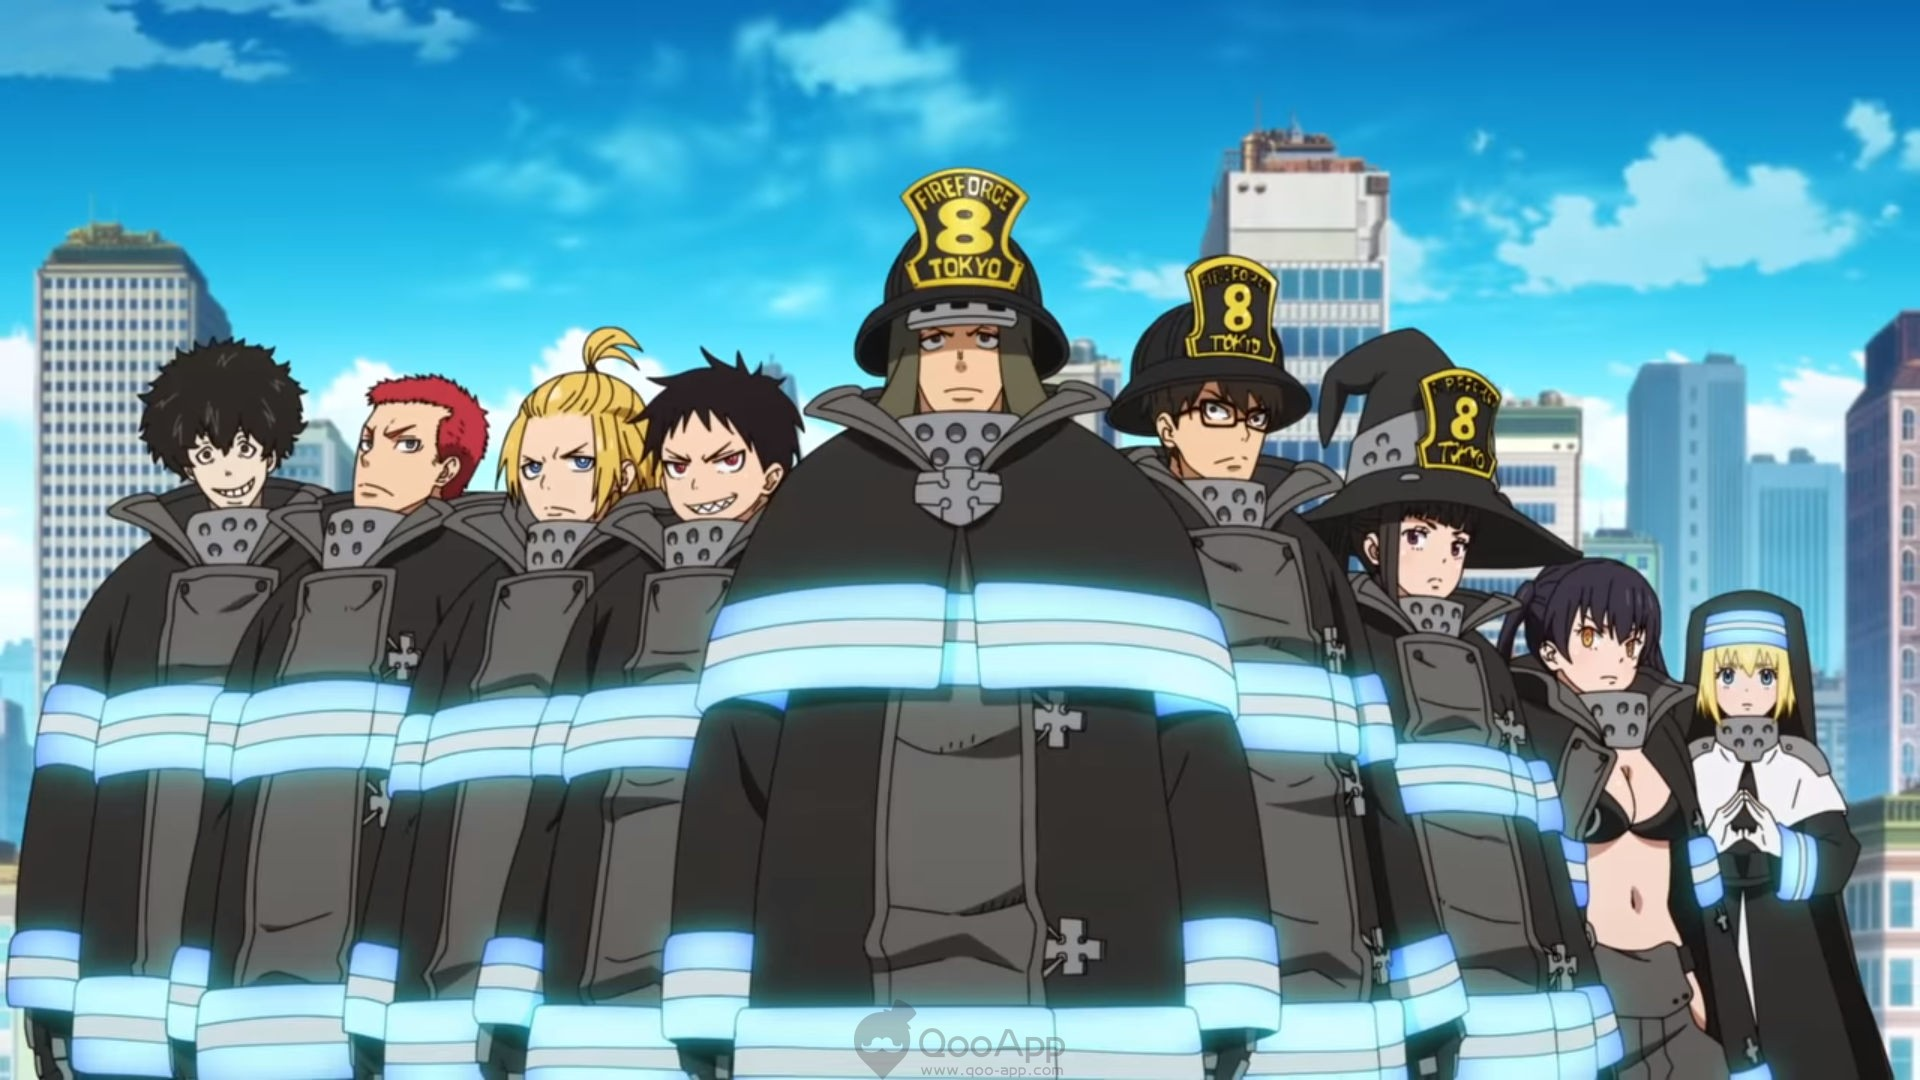 Fire Force Qooapp Hd wallpapers for pc (49 wallpapers). fire force qooapp